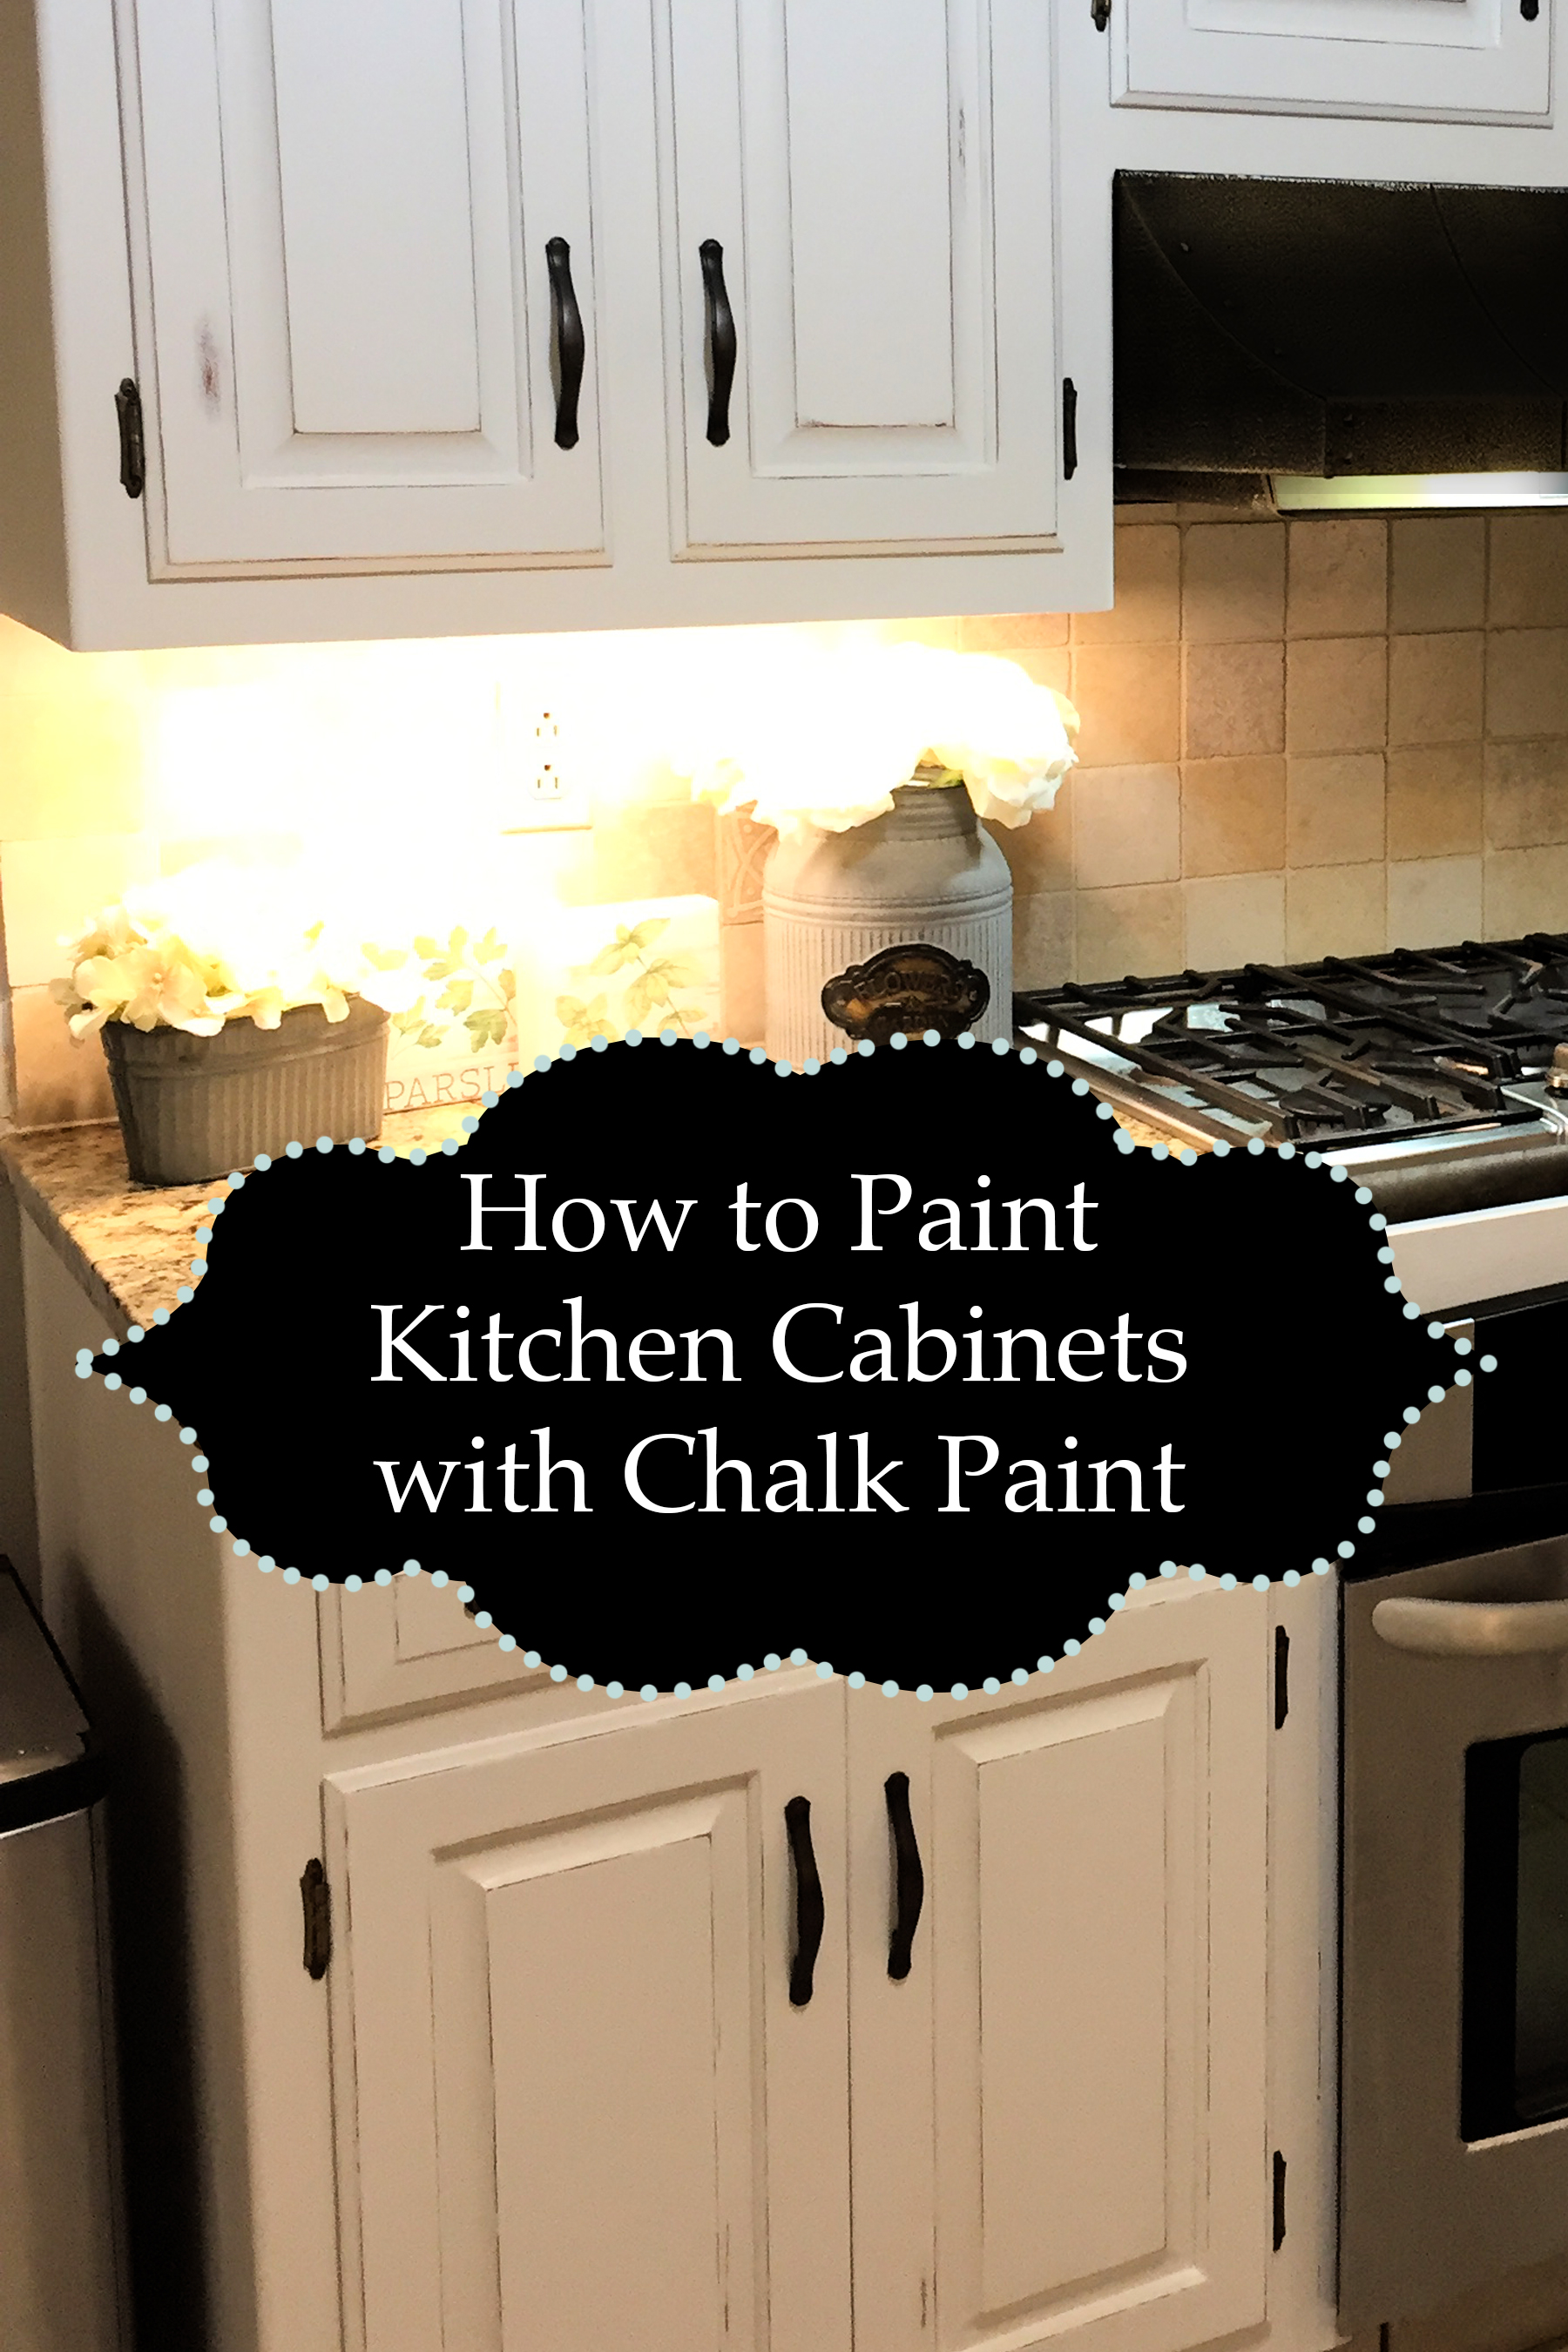 Painting Kitchen Cabinets With Chalk Paint The Kelly Homestead